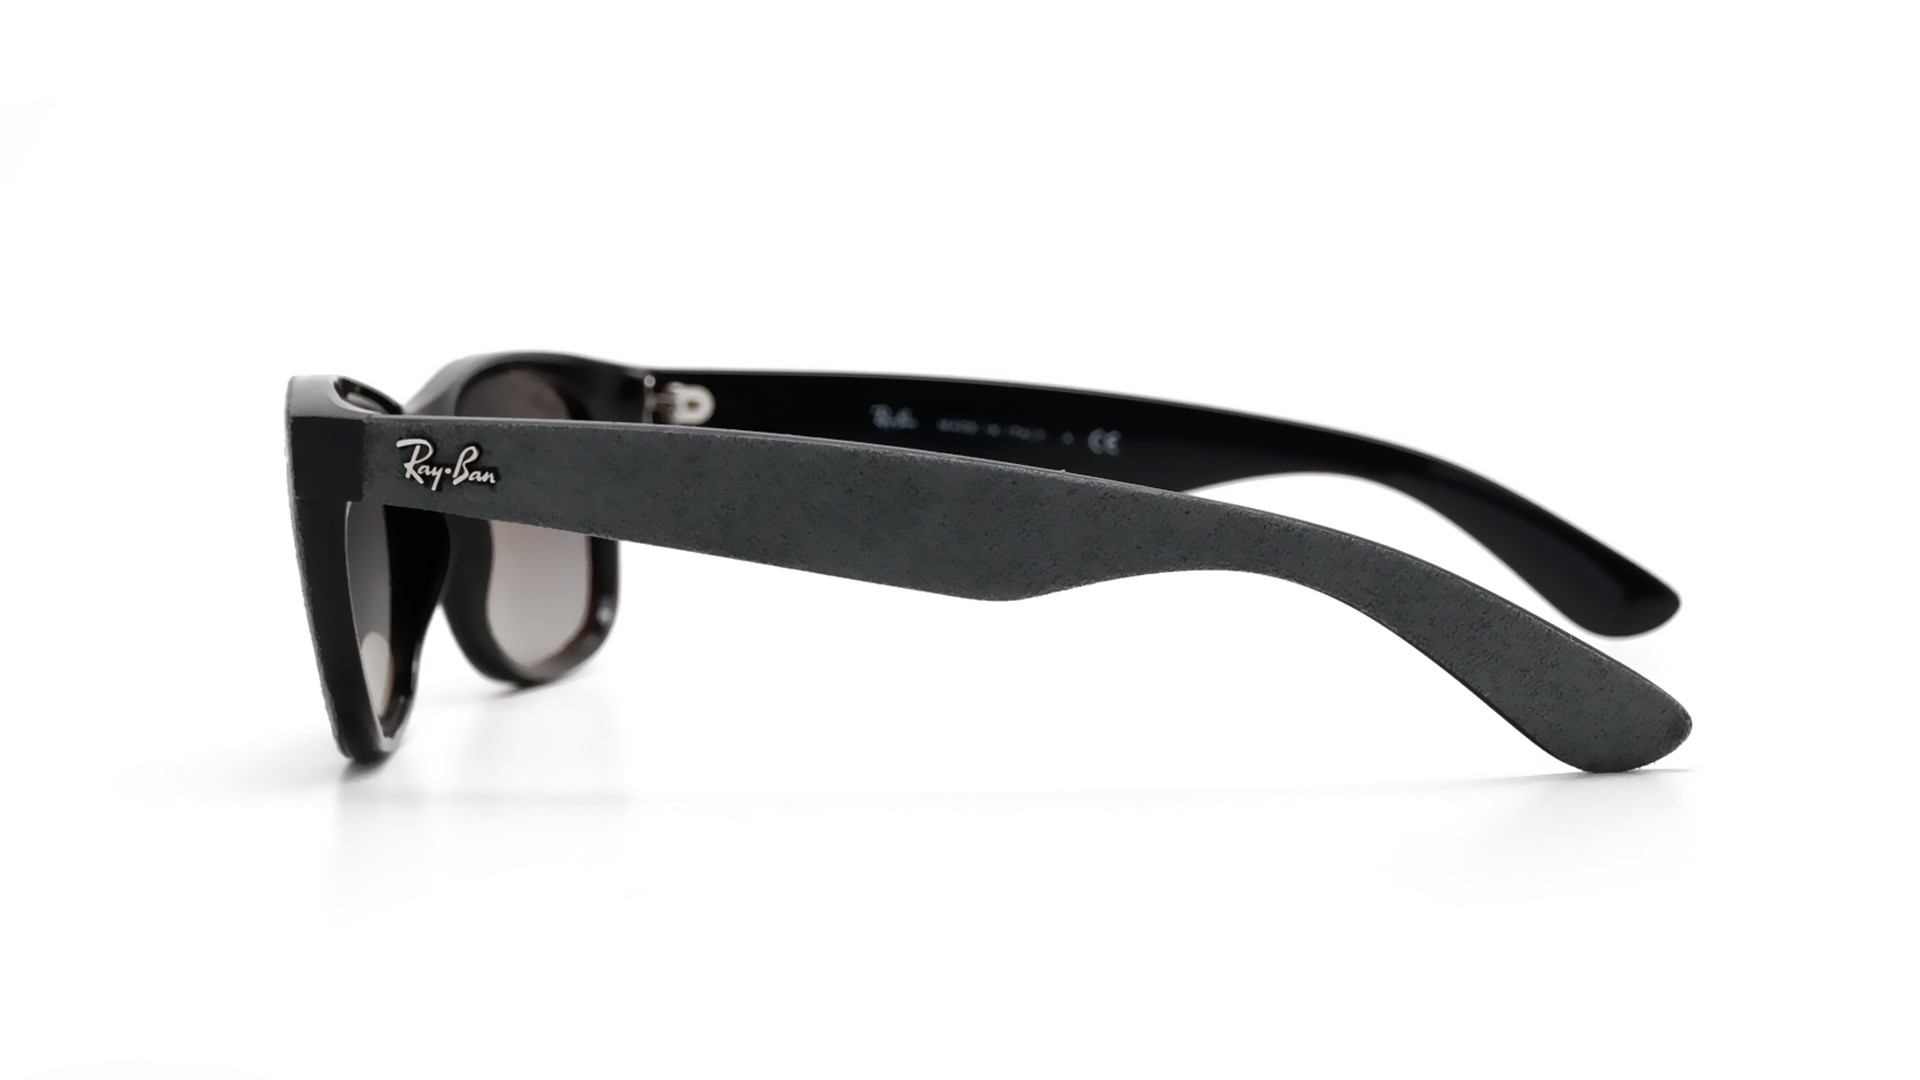 d7a1f0688c How To Replace Ray Ban New Wayfarer Lenses « One More Soul